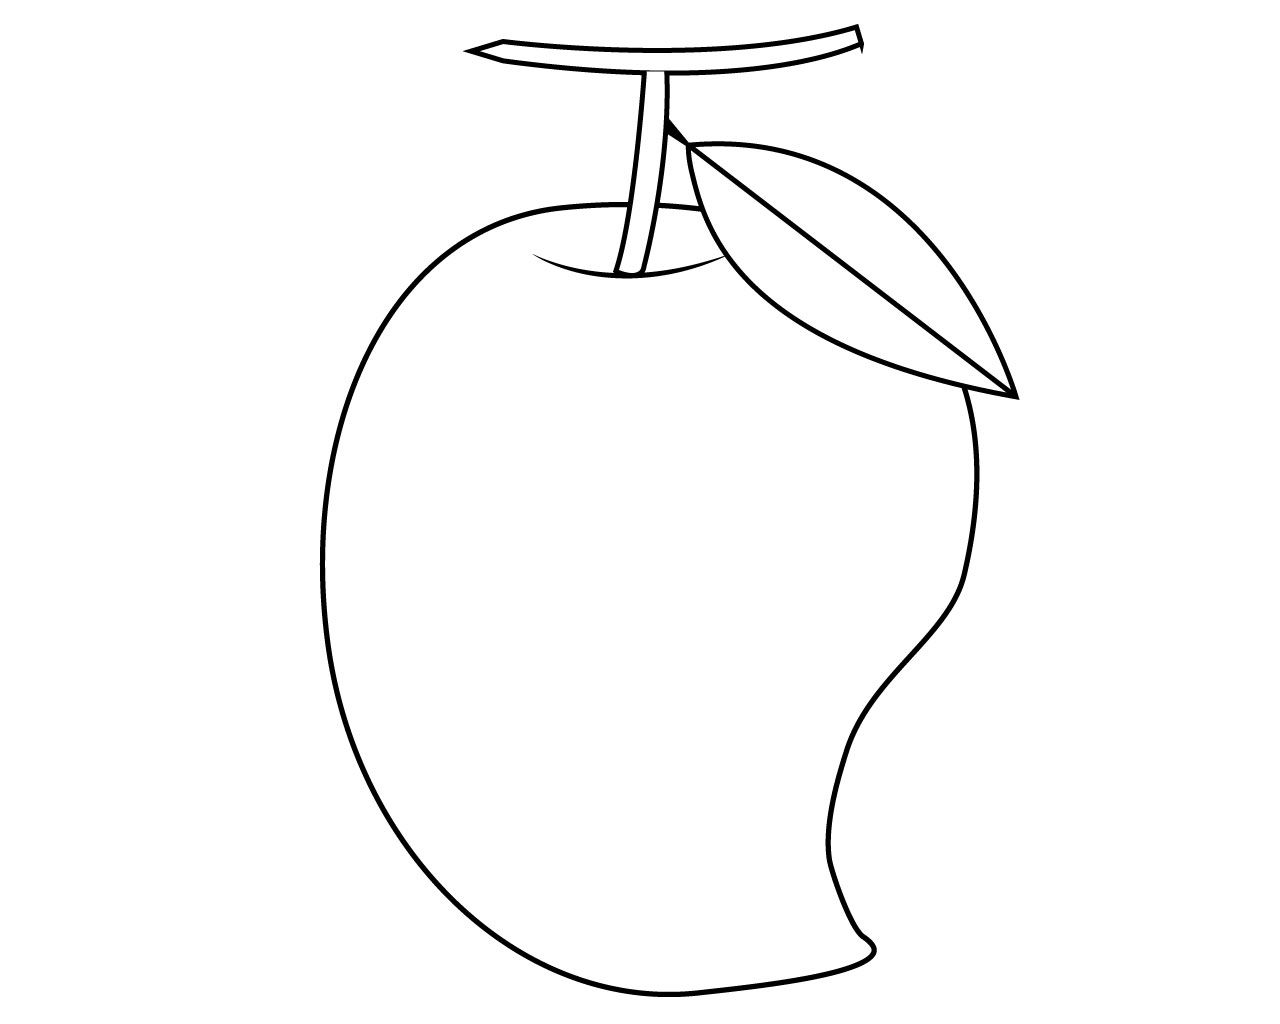 Mango Fruits Coloring Pages Fruit Coloring Pages Coloring